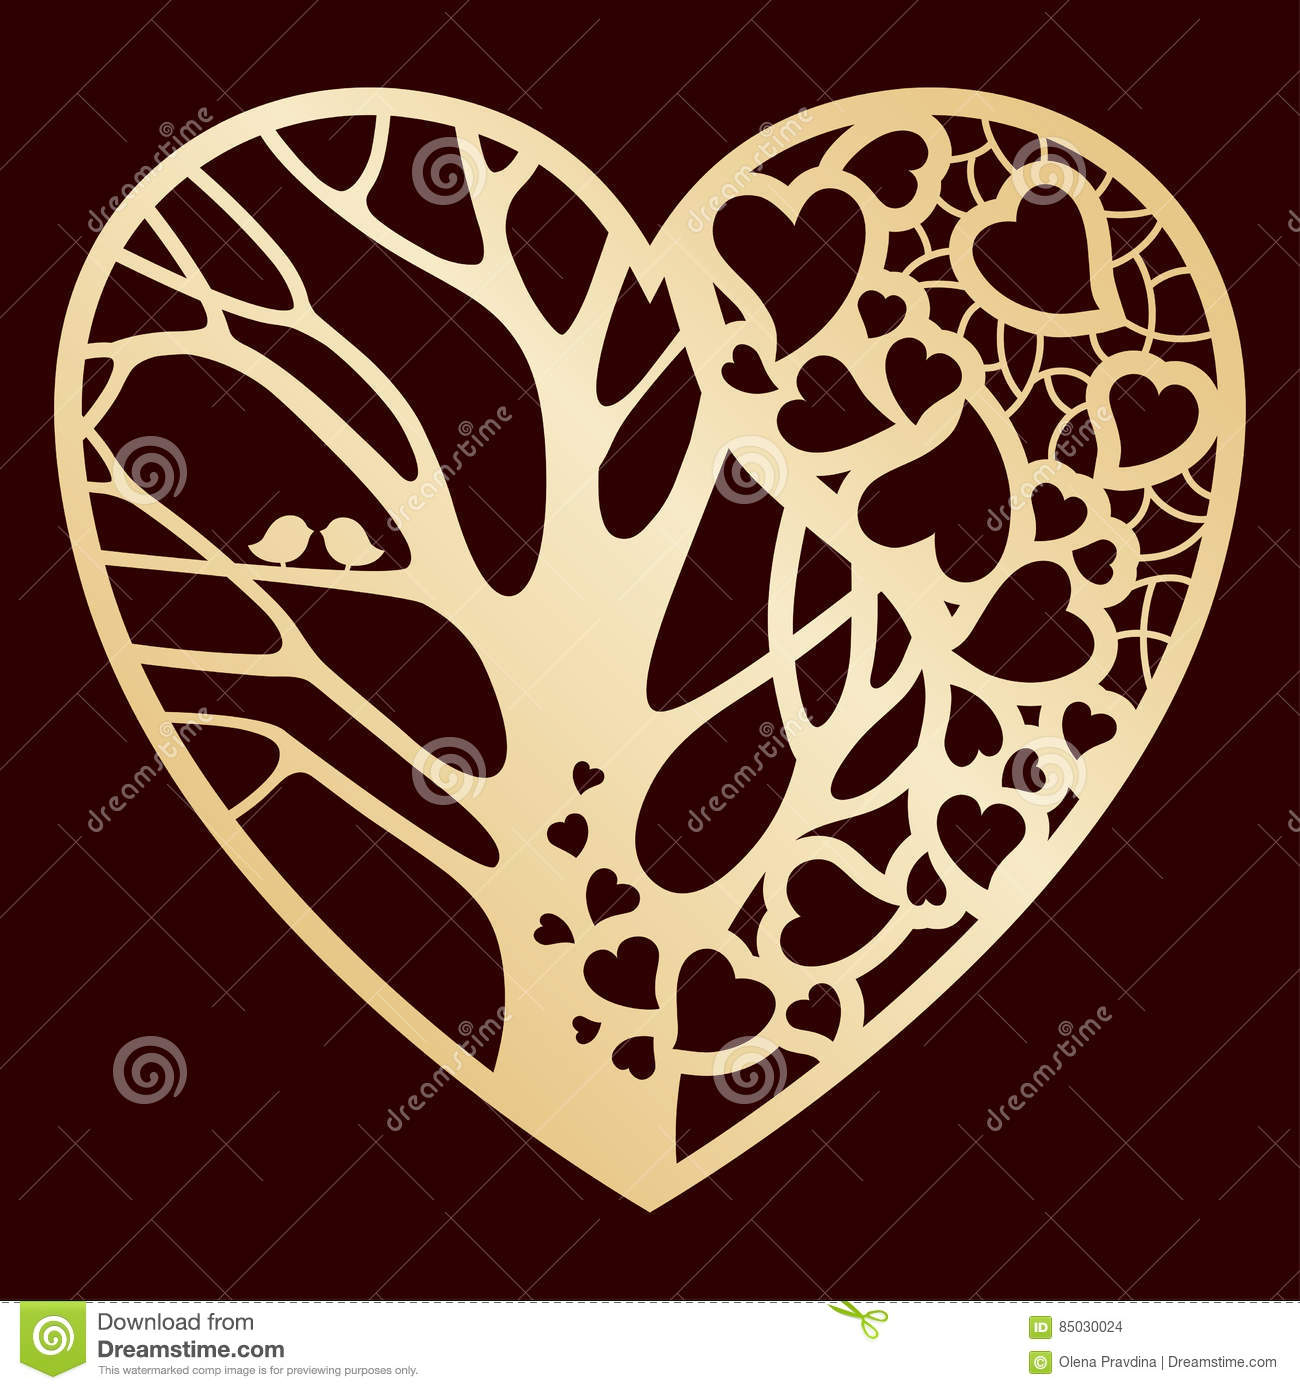 Openwork Golden Heart With A Tree Inside Laser Cutting Or Foiling